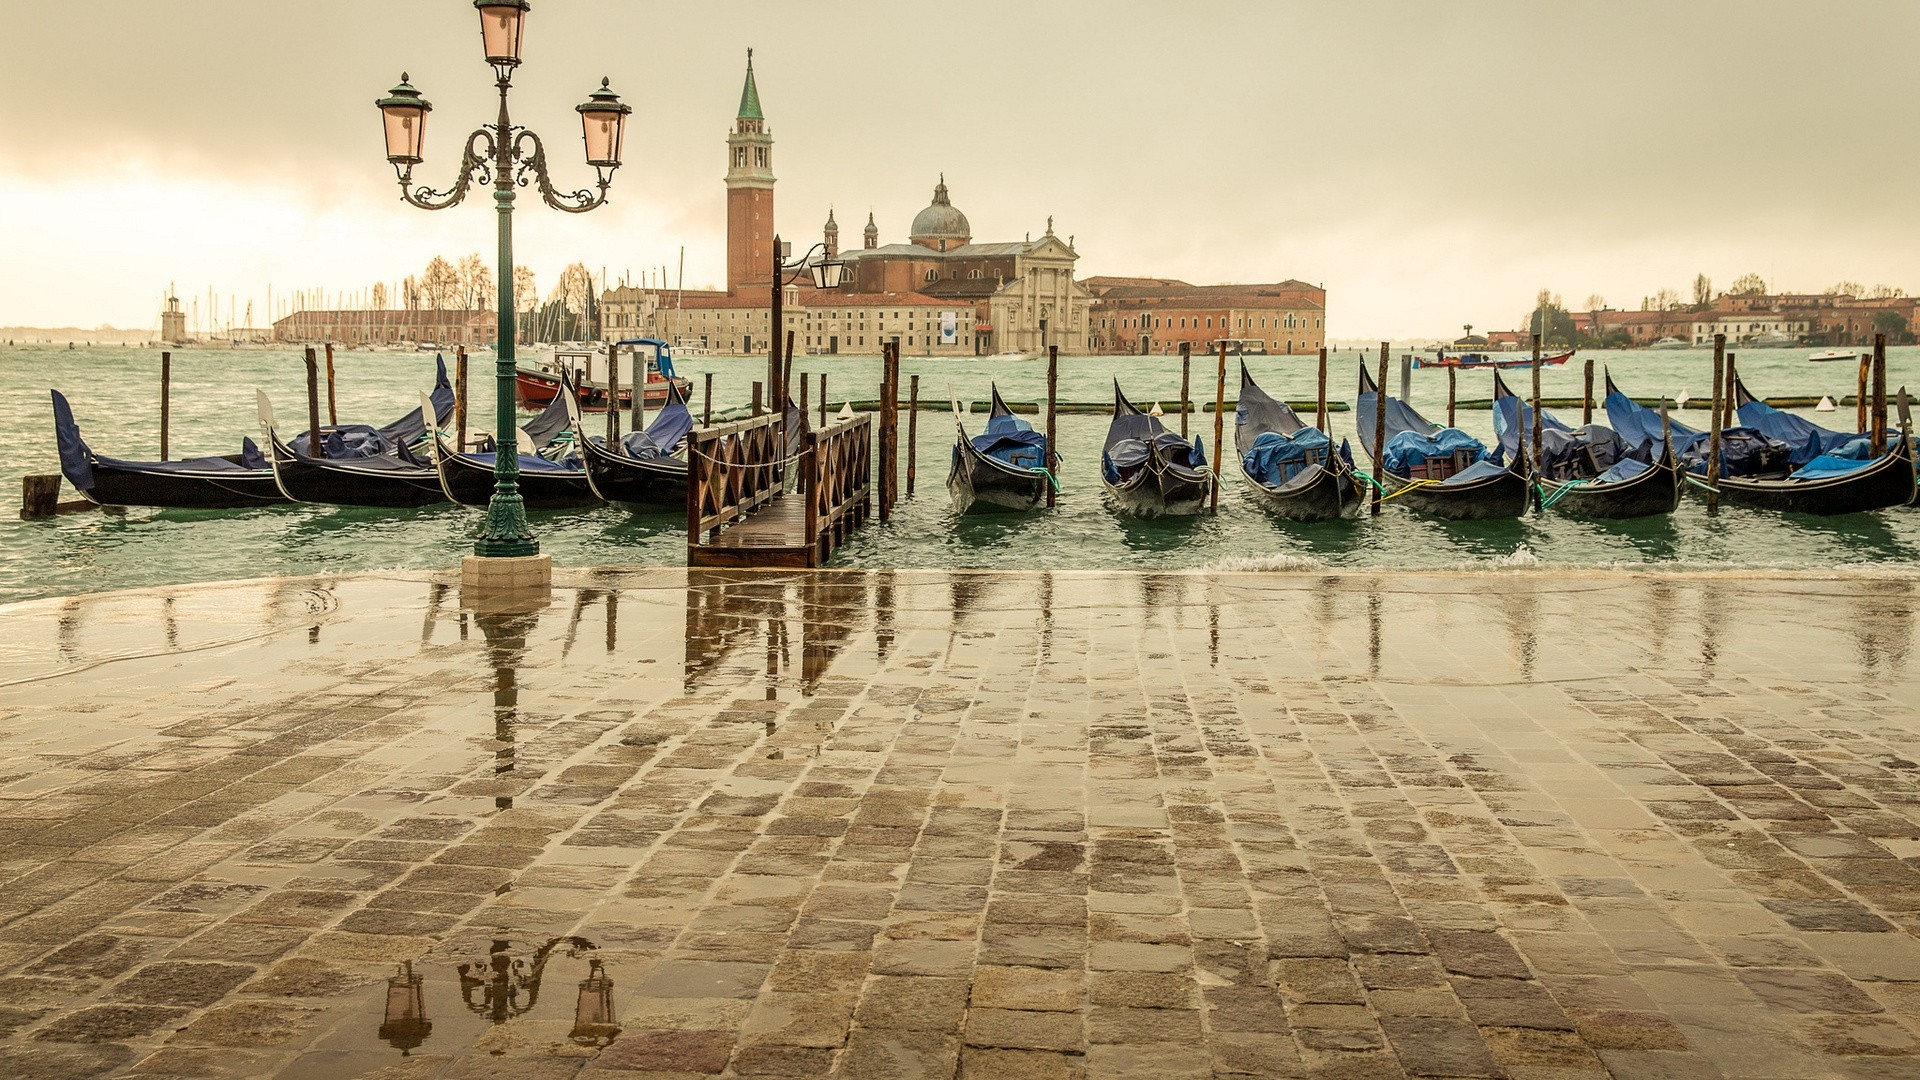 cityscapes-lanterns-boats-venice-italy_www-paperhi-com_72